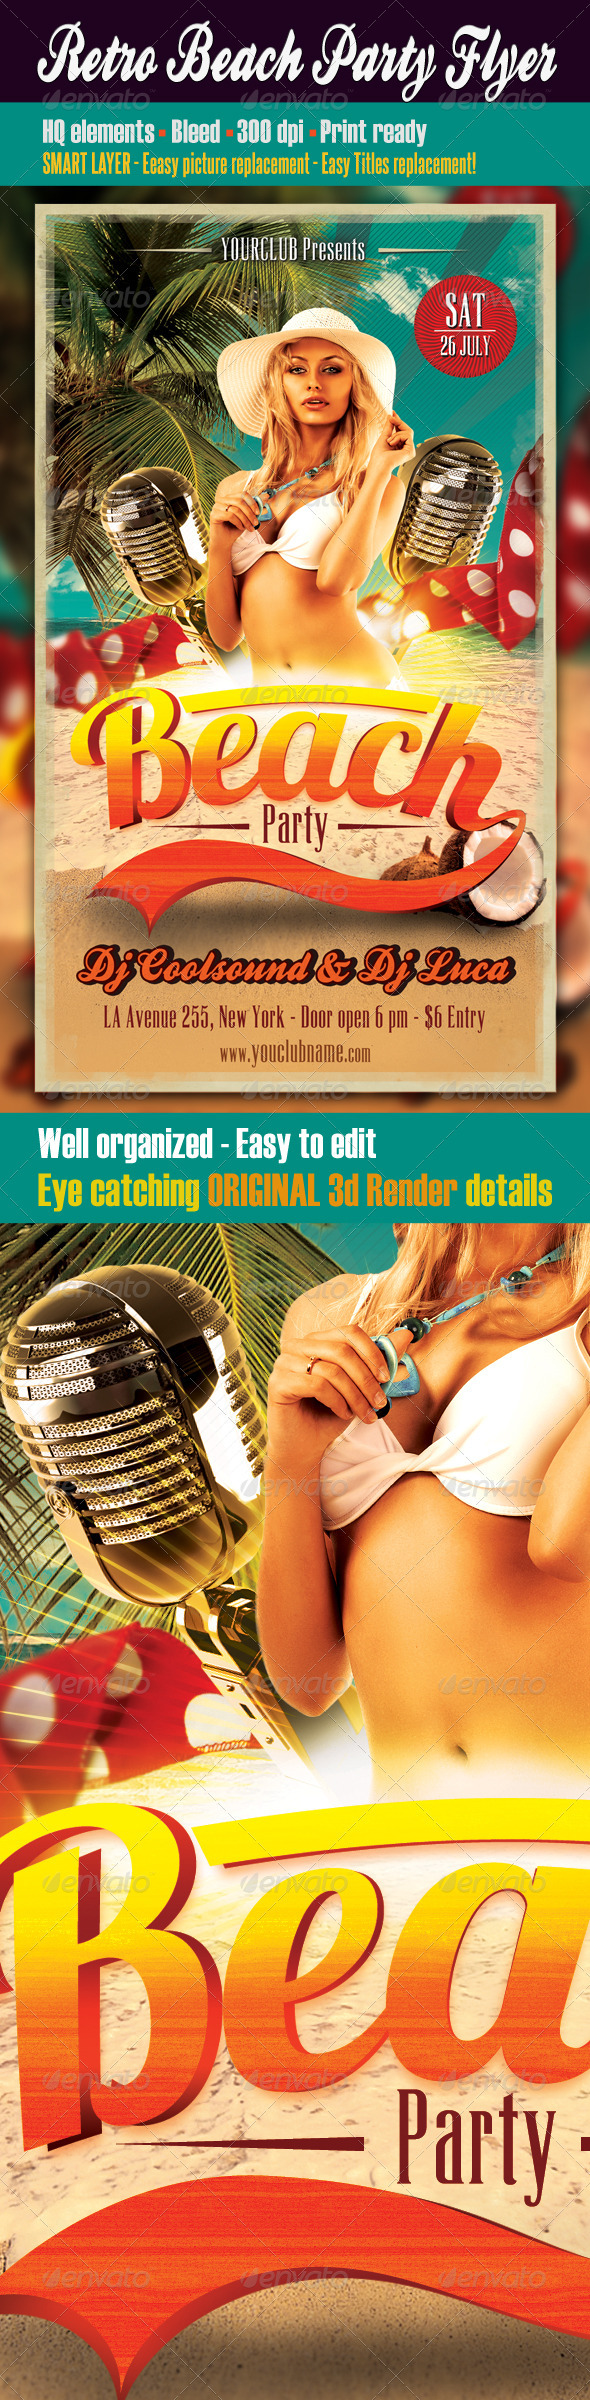 Retro Beach Party Flyer - Clubs & Parties Events